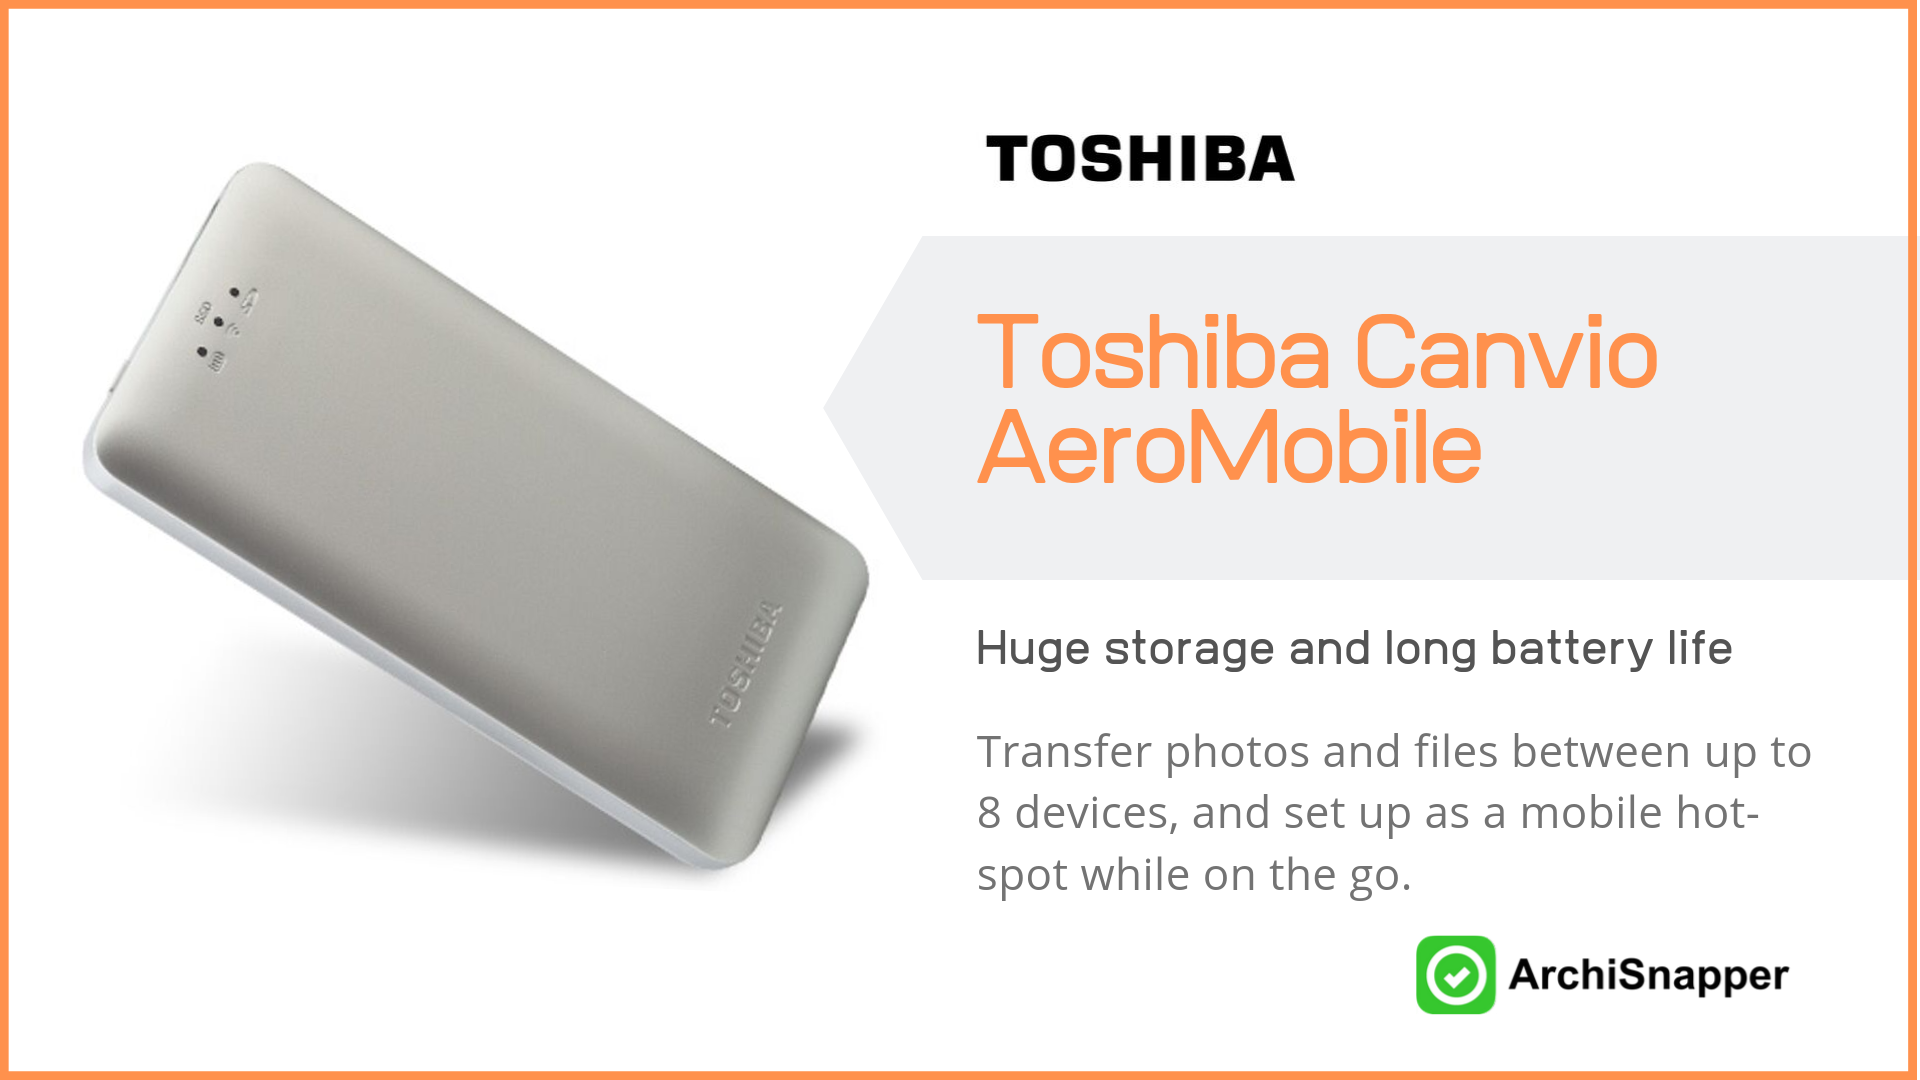 Toshiba Canvio AeroMobile | List of the 15 must-have tech tools and accessories ideal for architects presented by Archisnapper